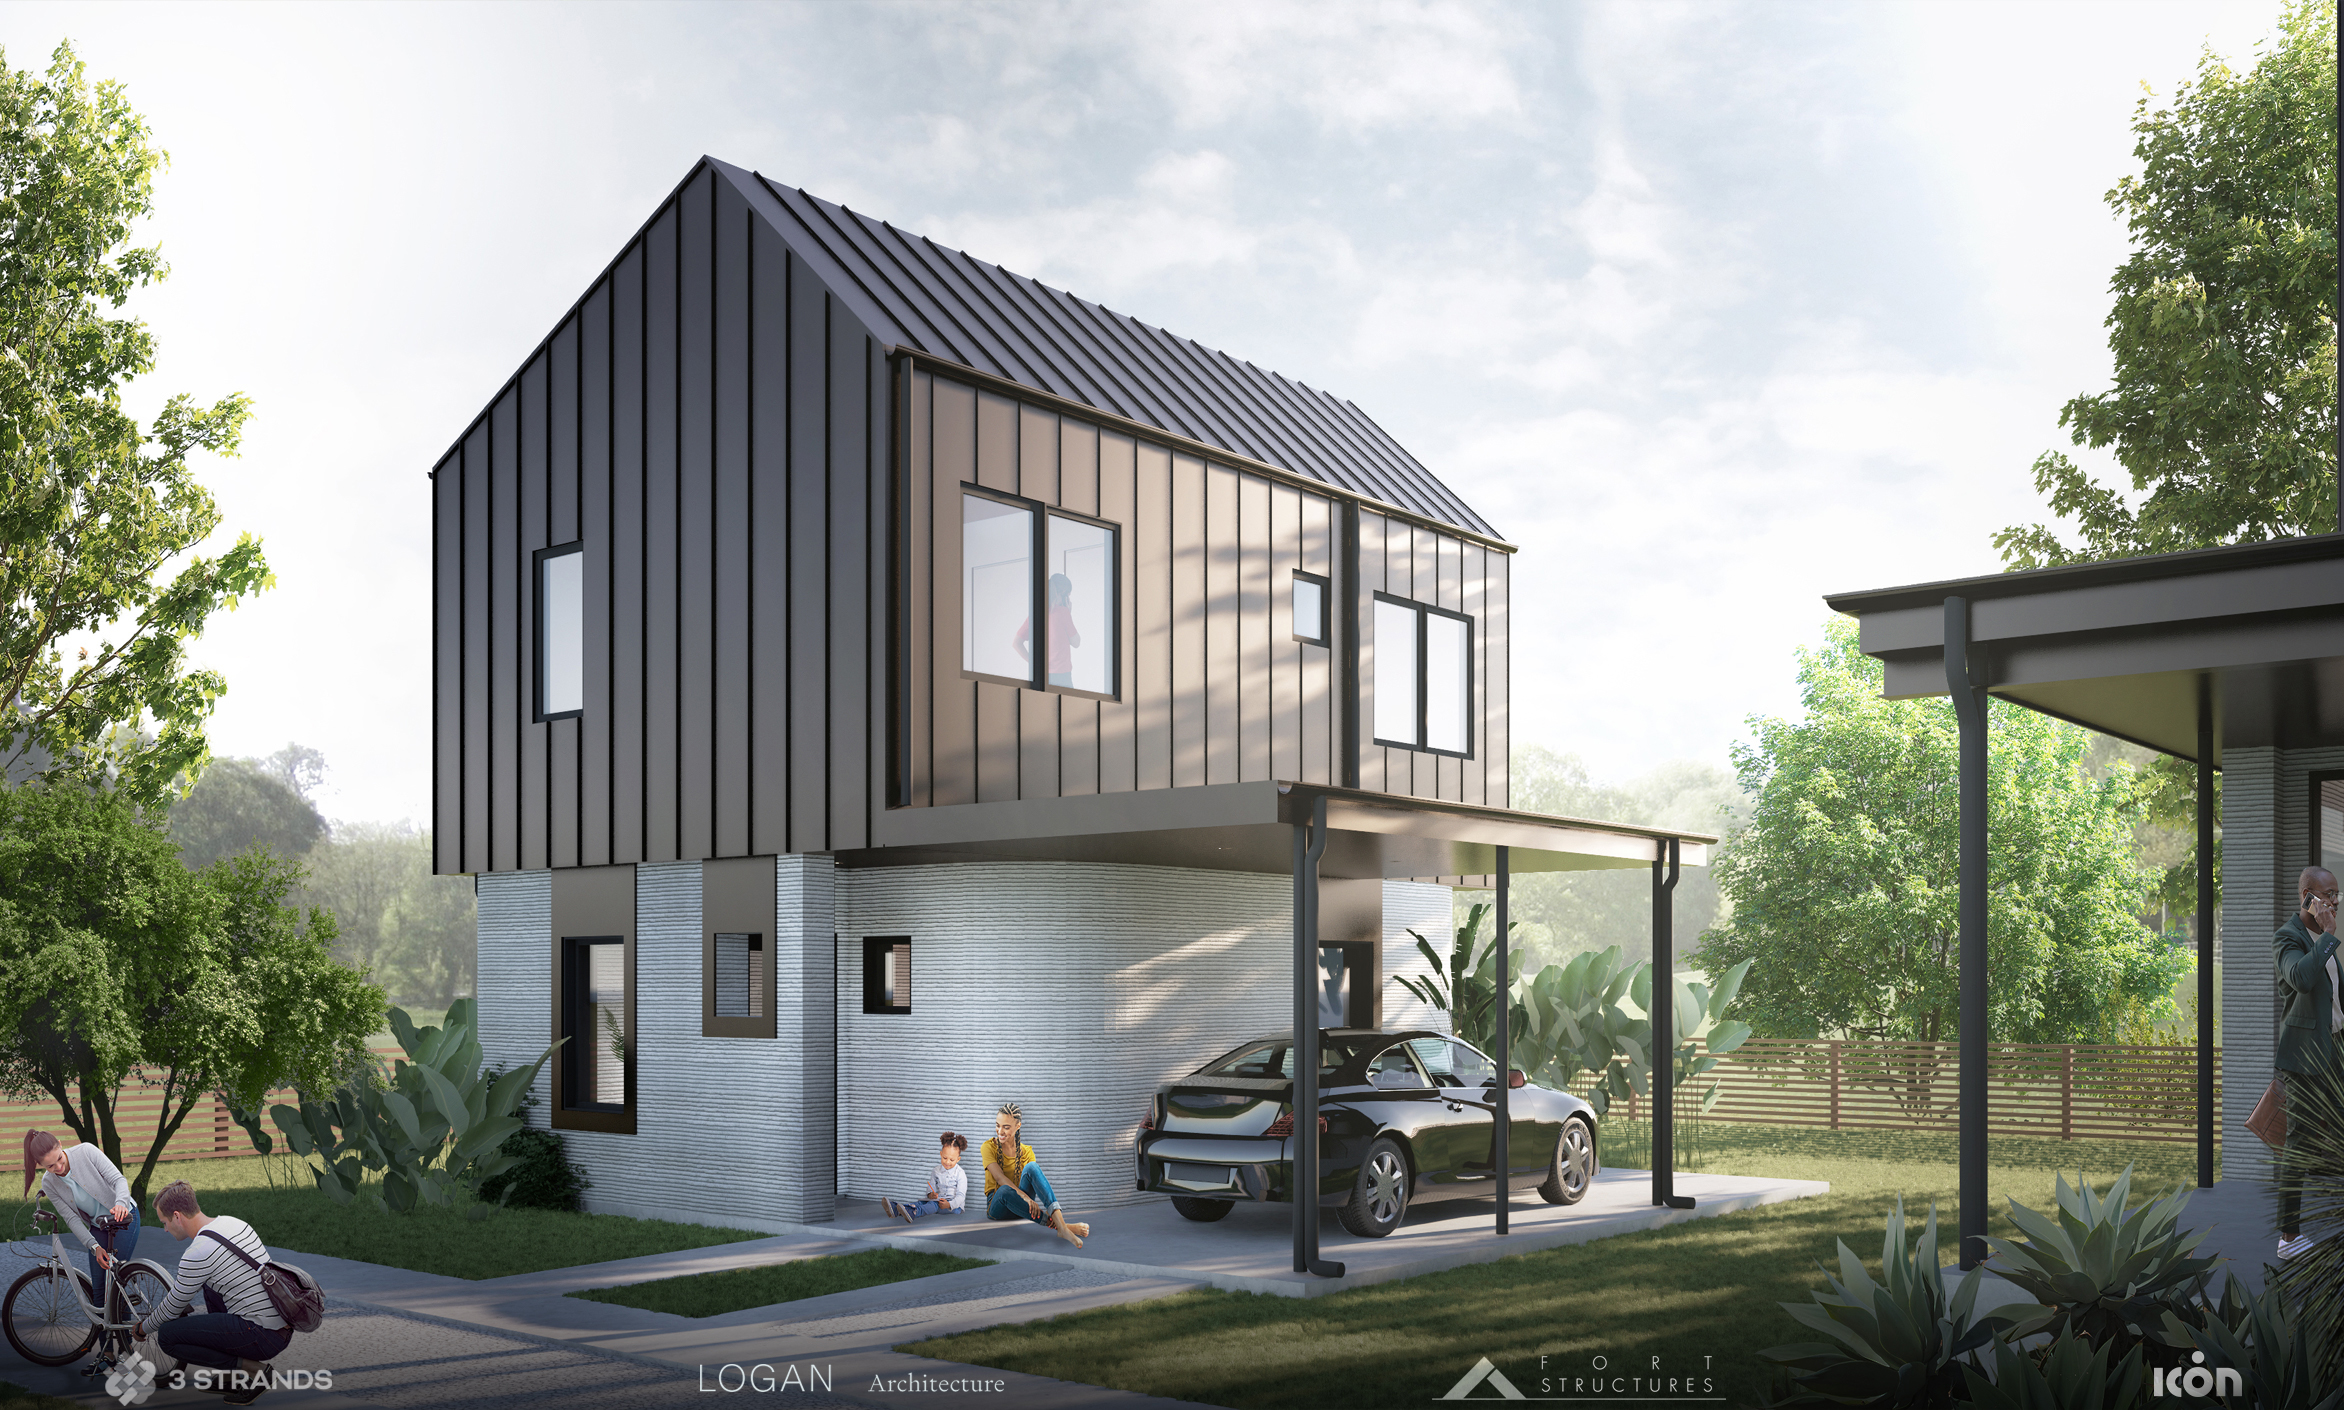 3Strands and ICON 3D-Printed Homes AustinTX 2021 Exterior 3 Credit-LoganArchitecture